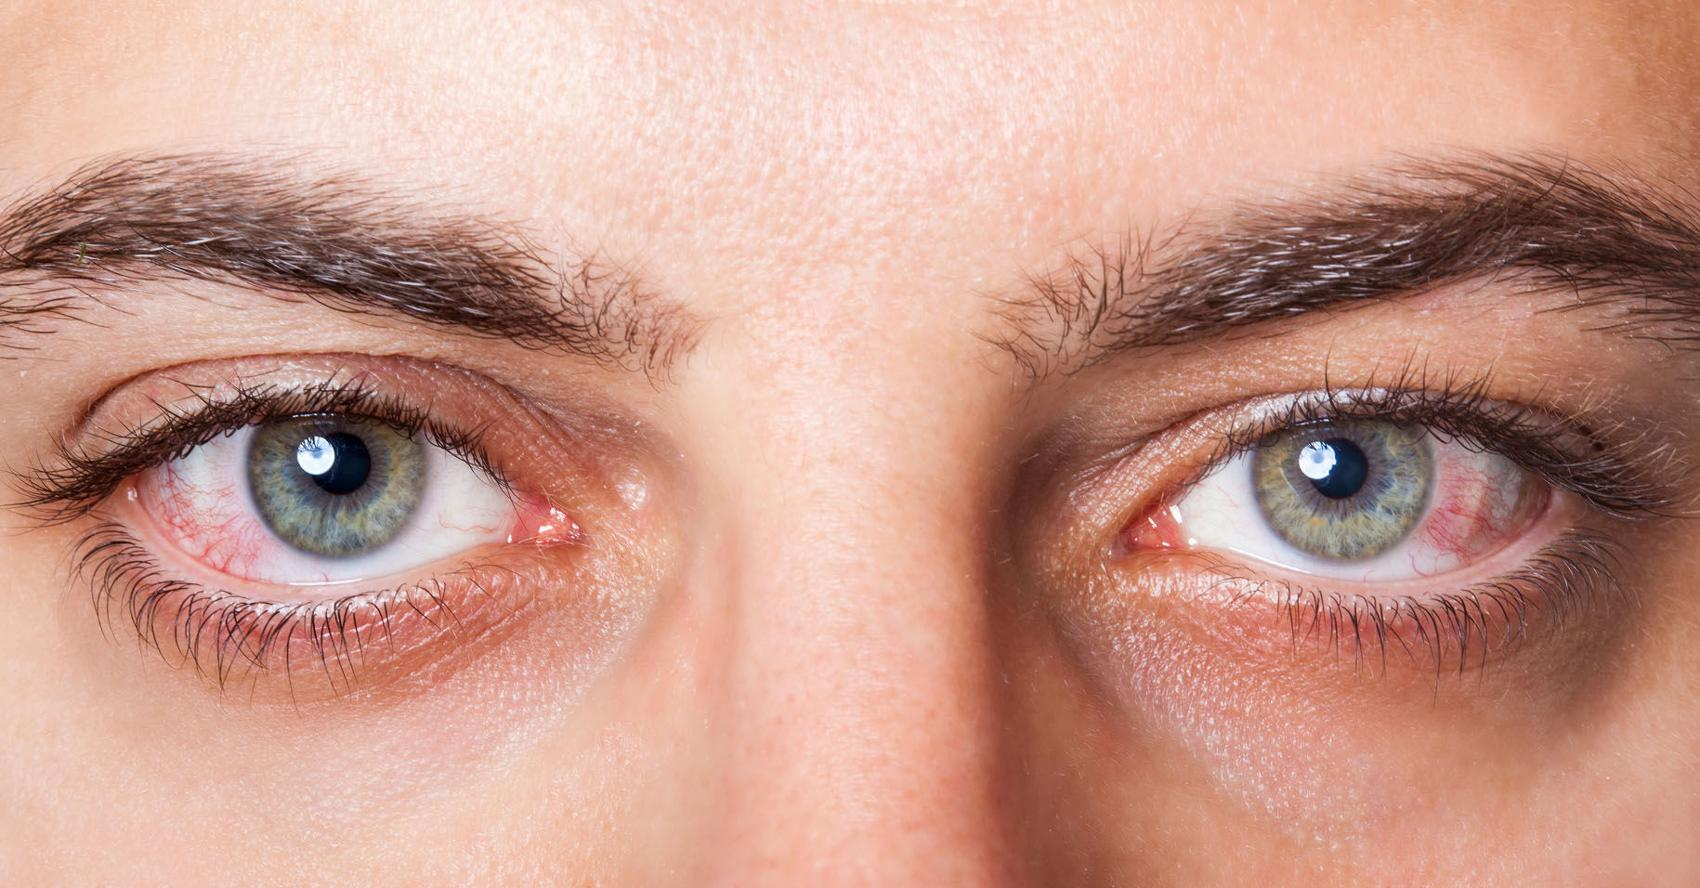 Safe alternatives to help relieve dry eye syndrome